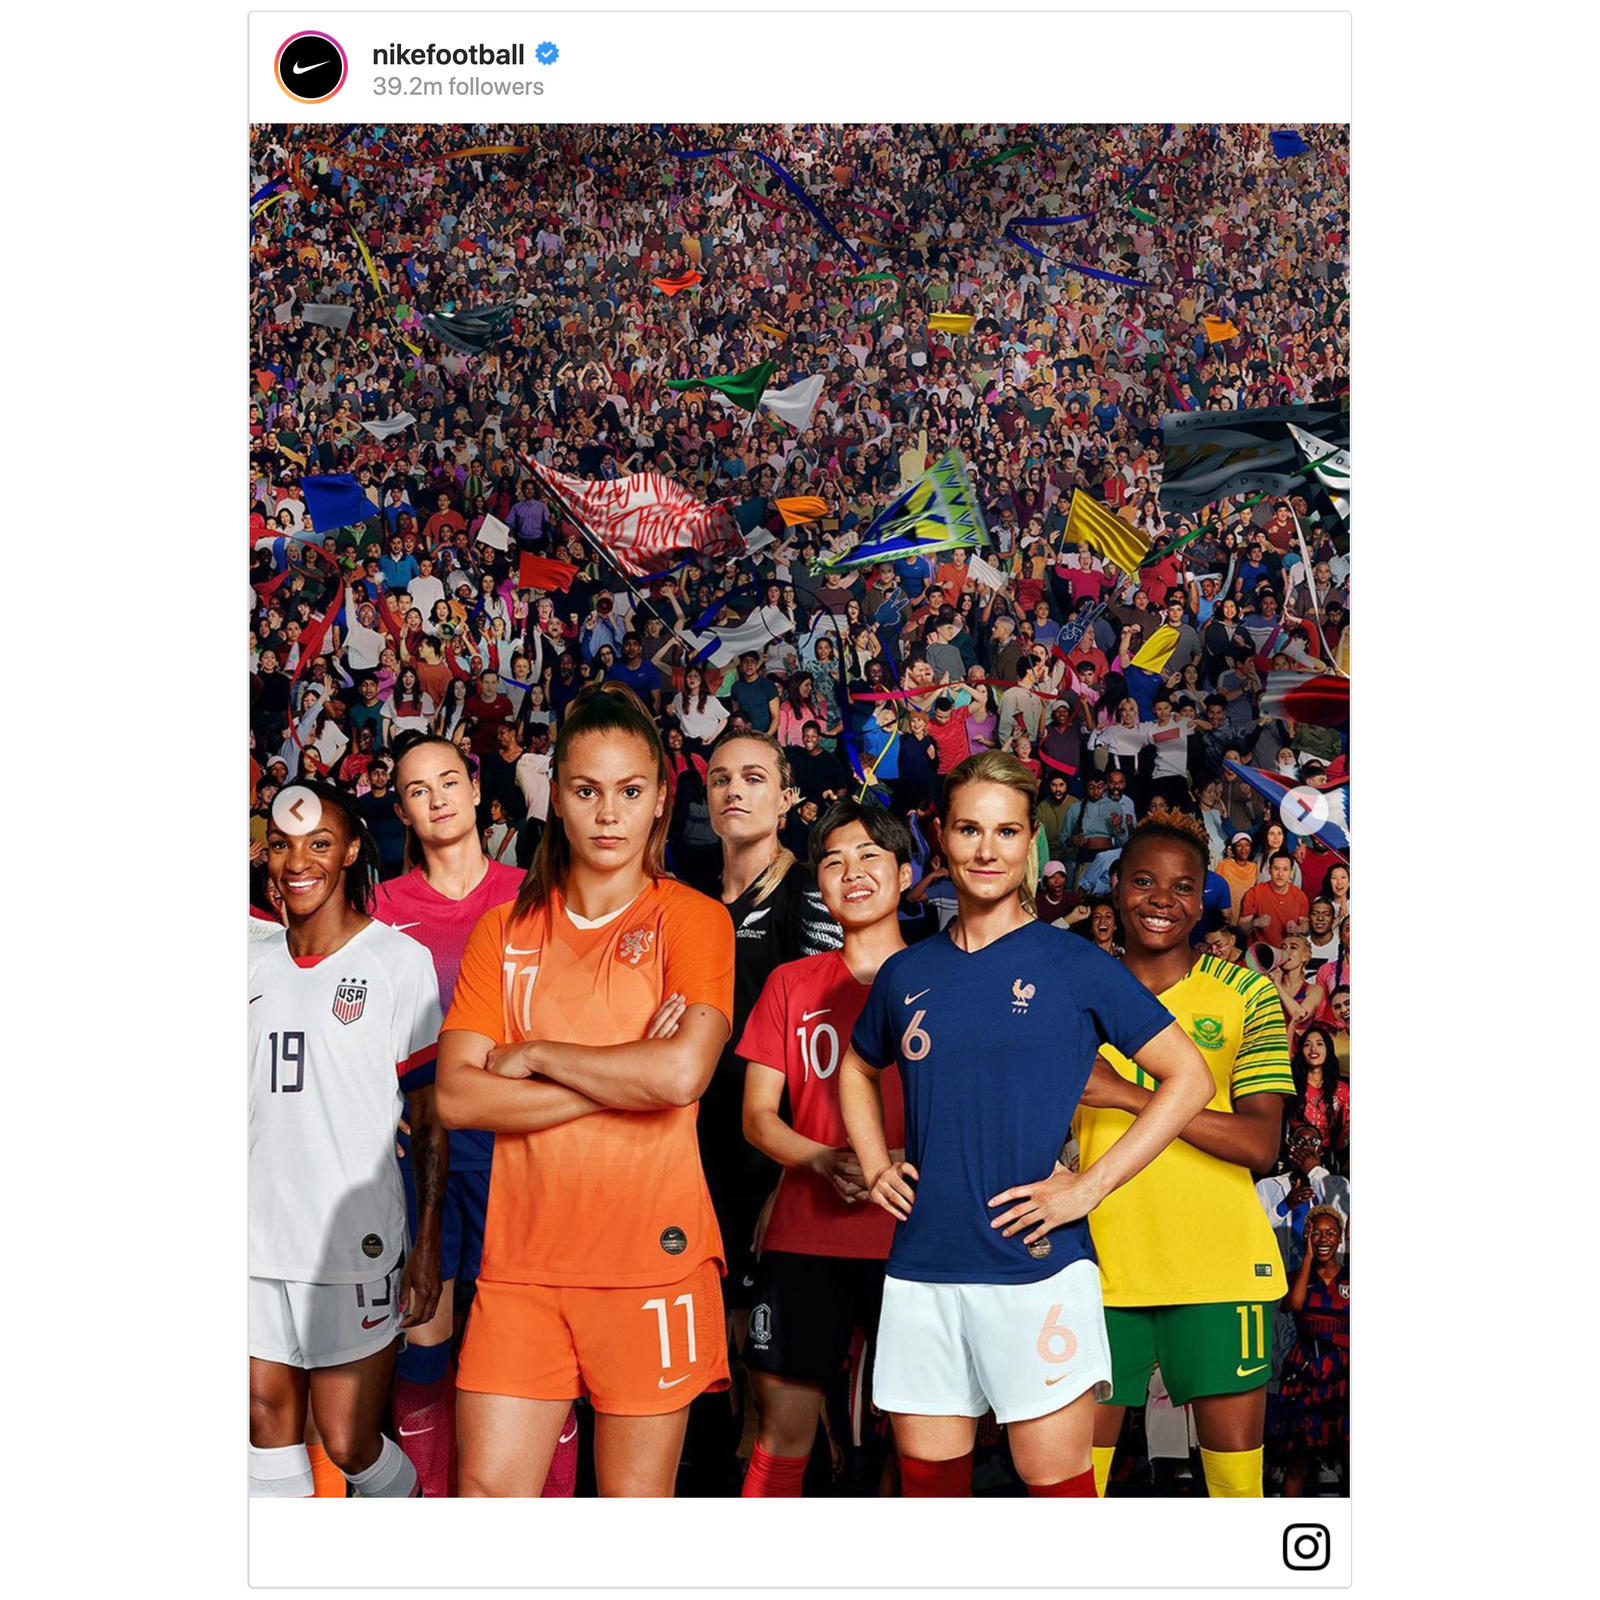 Nike Wins World Cup 14